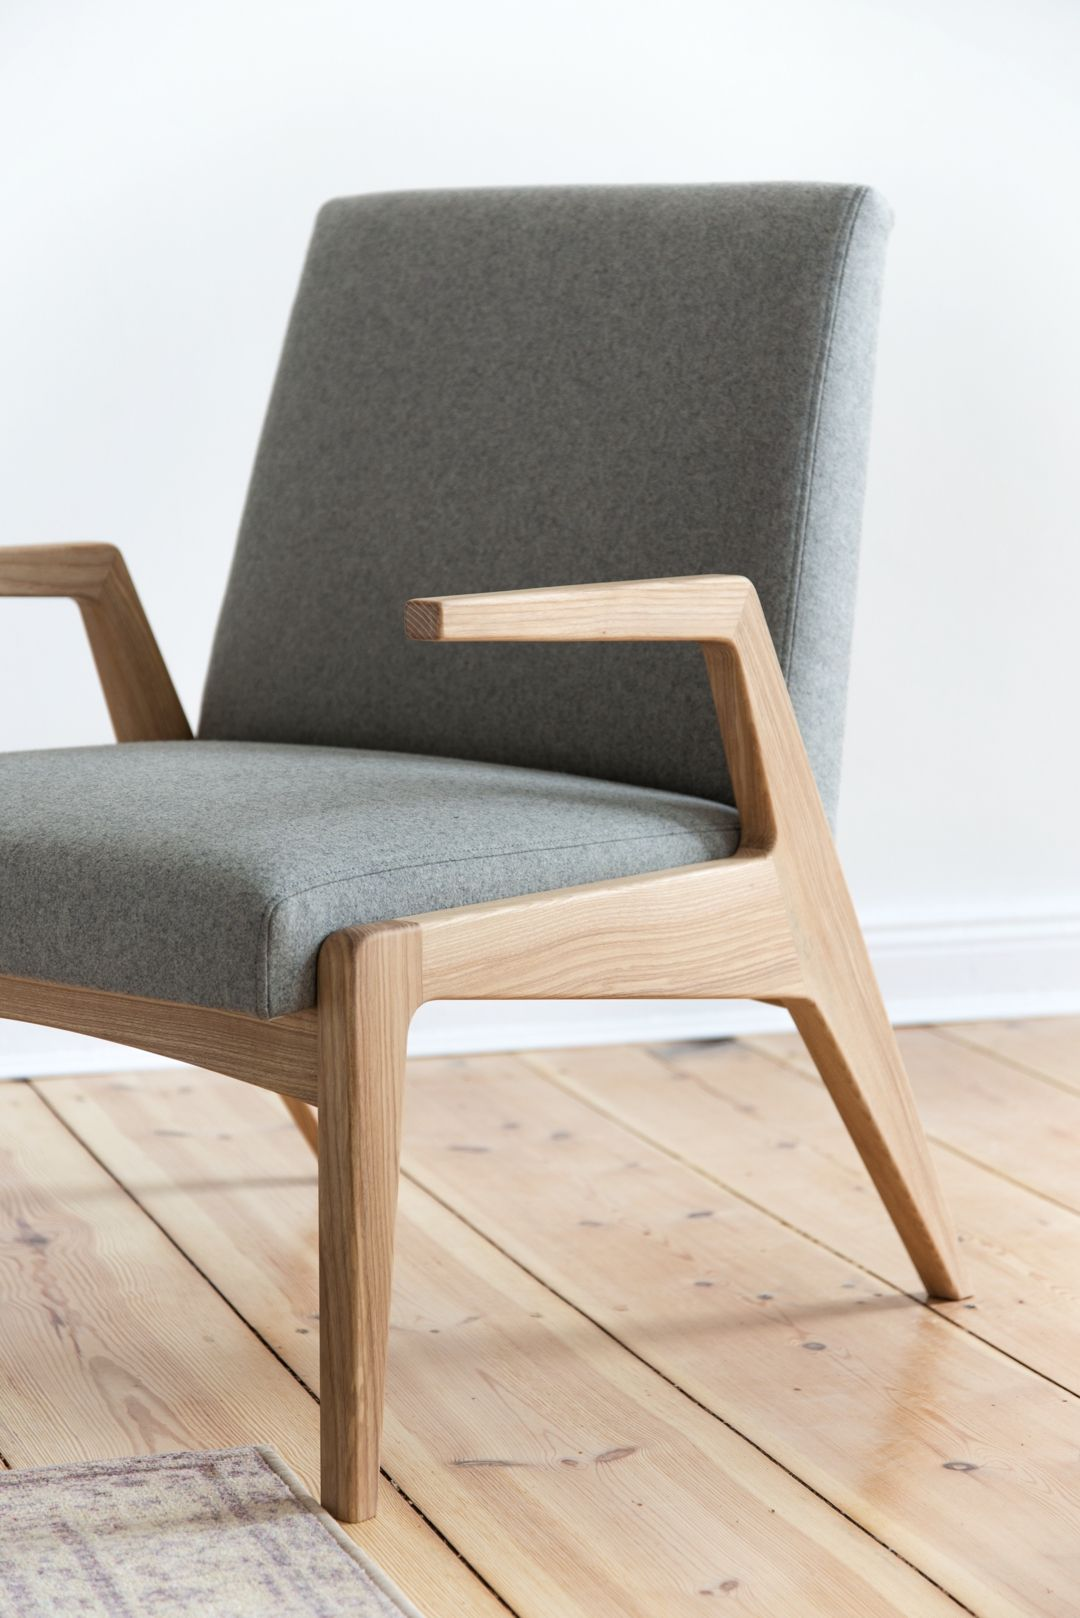 R1378 by Politura is part of Wood chair design -